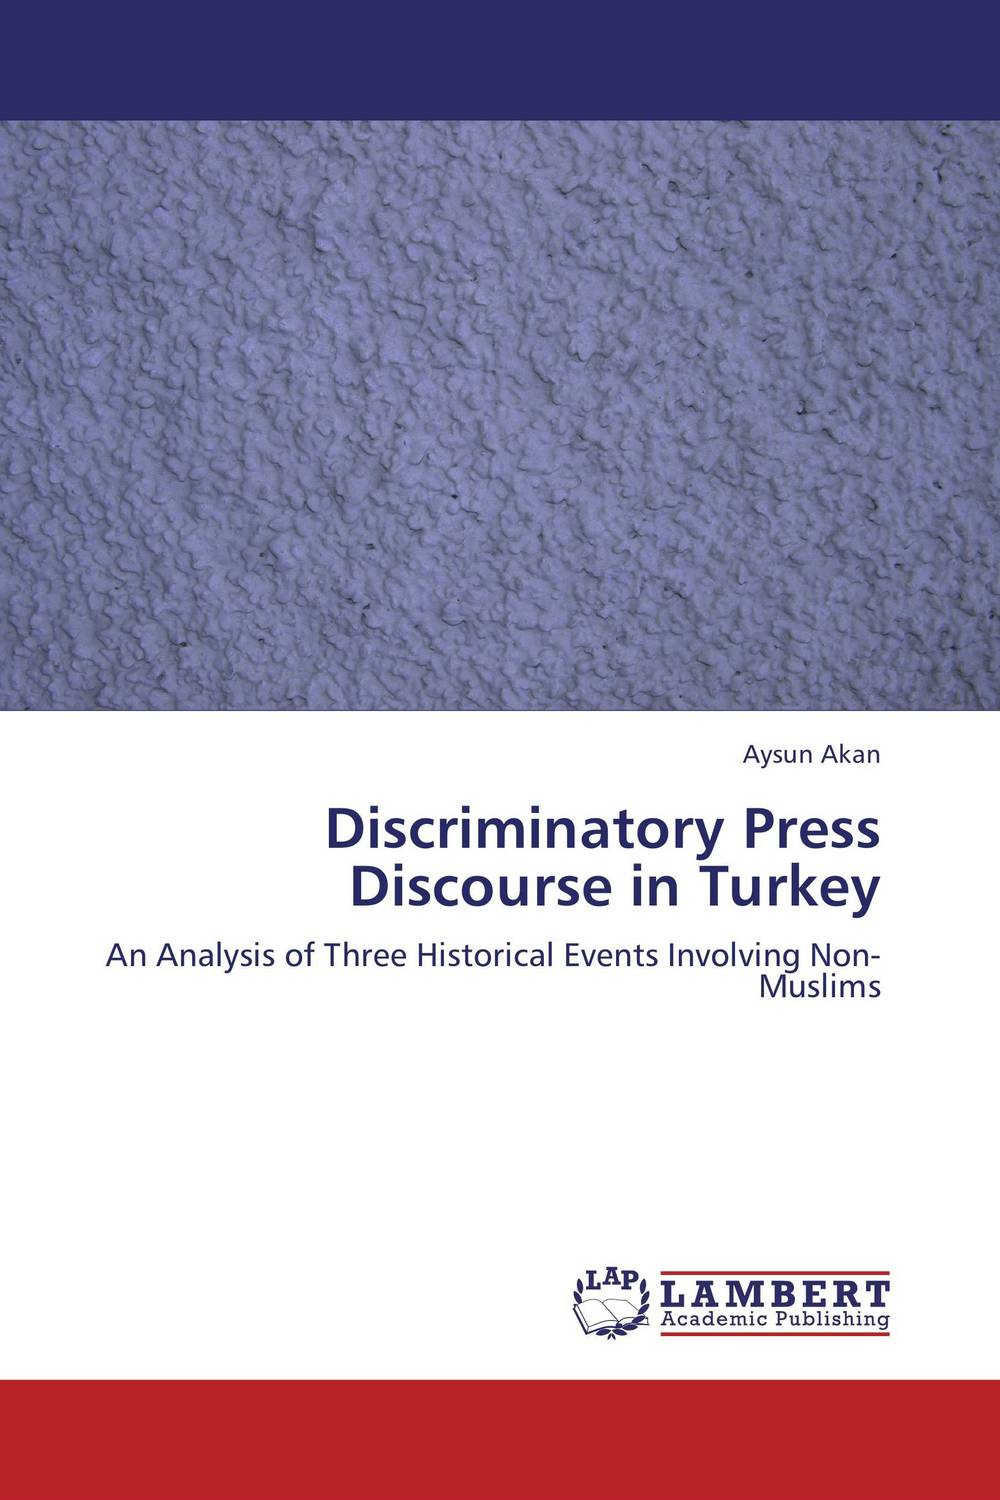 Discriminatory Press Discourse in Turkey